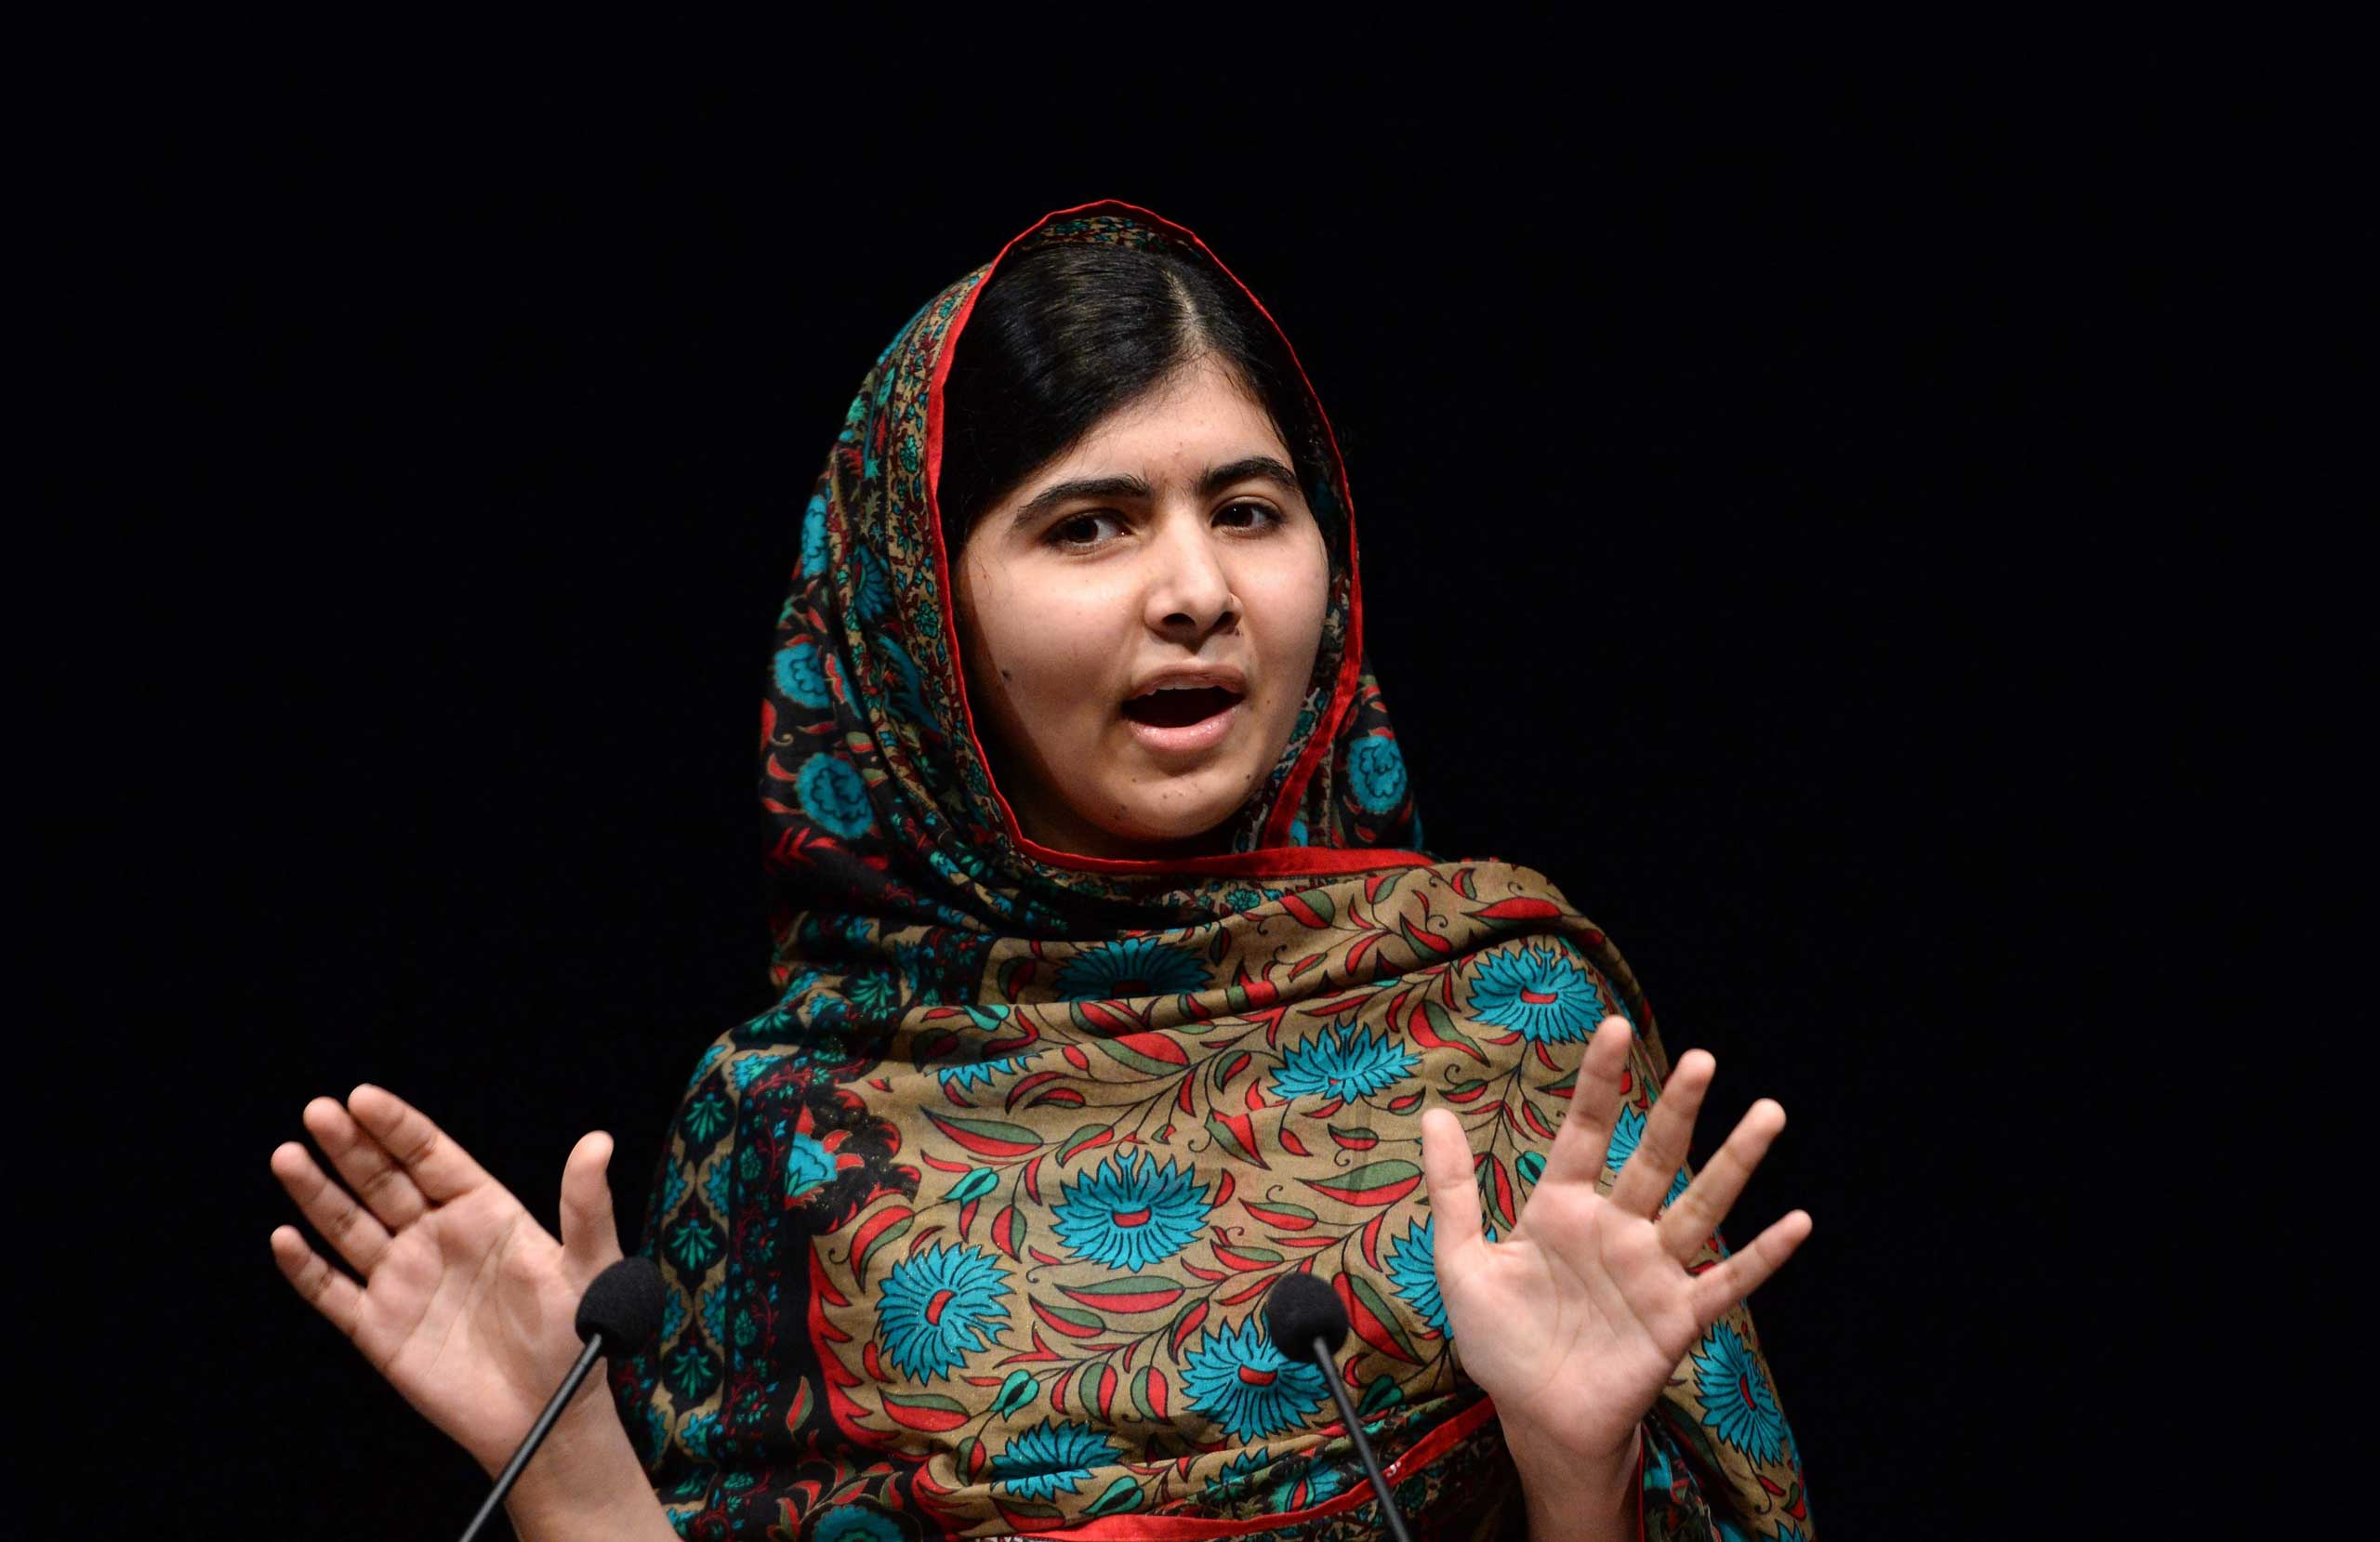 Malala Yousafzai of Pakistan delivers a statement after winning the Nobel Peace Prize in the Library of Birmingham in Birmingham, England on Oct. 10, 2014.